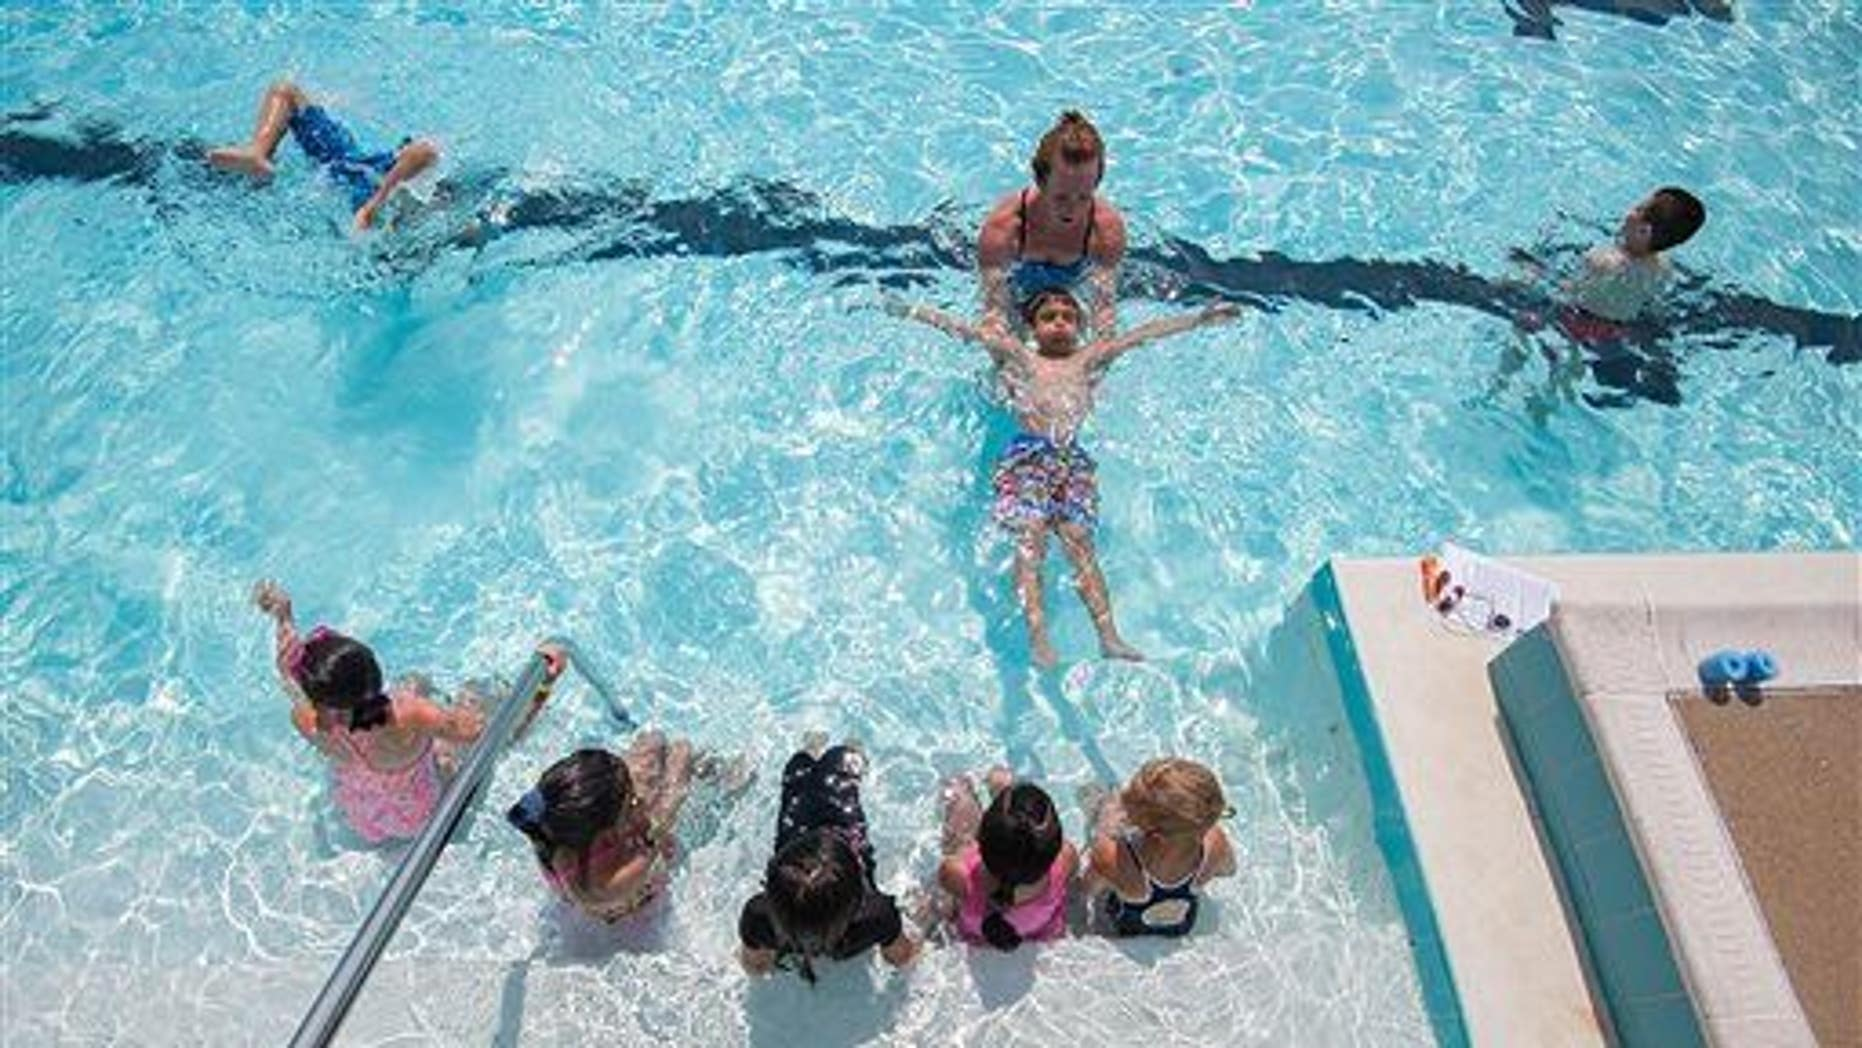 Secondary drowning can happen up to 24 hours after exiting pool.